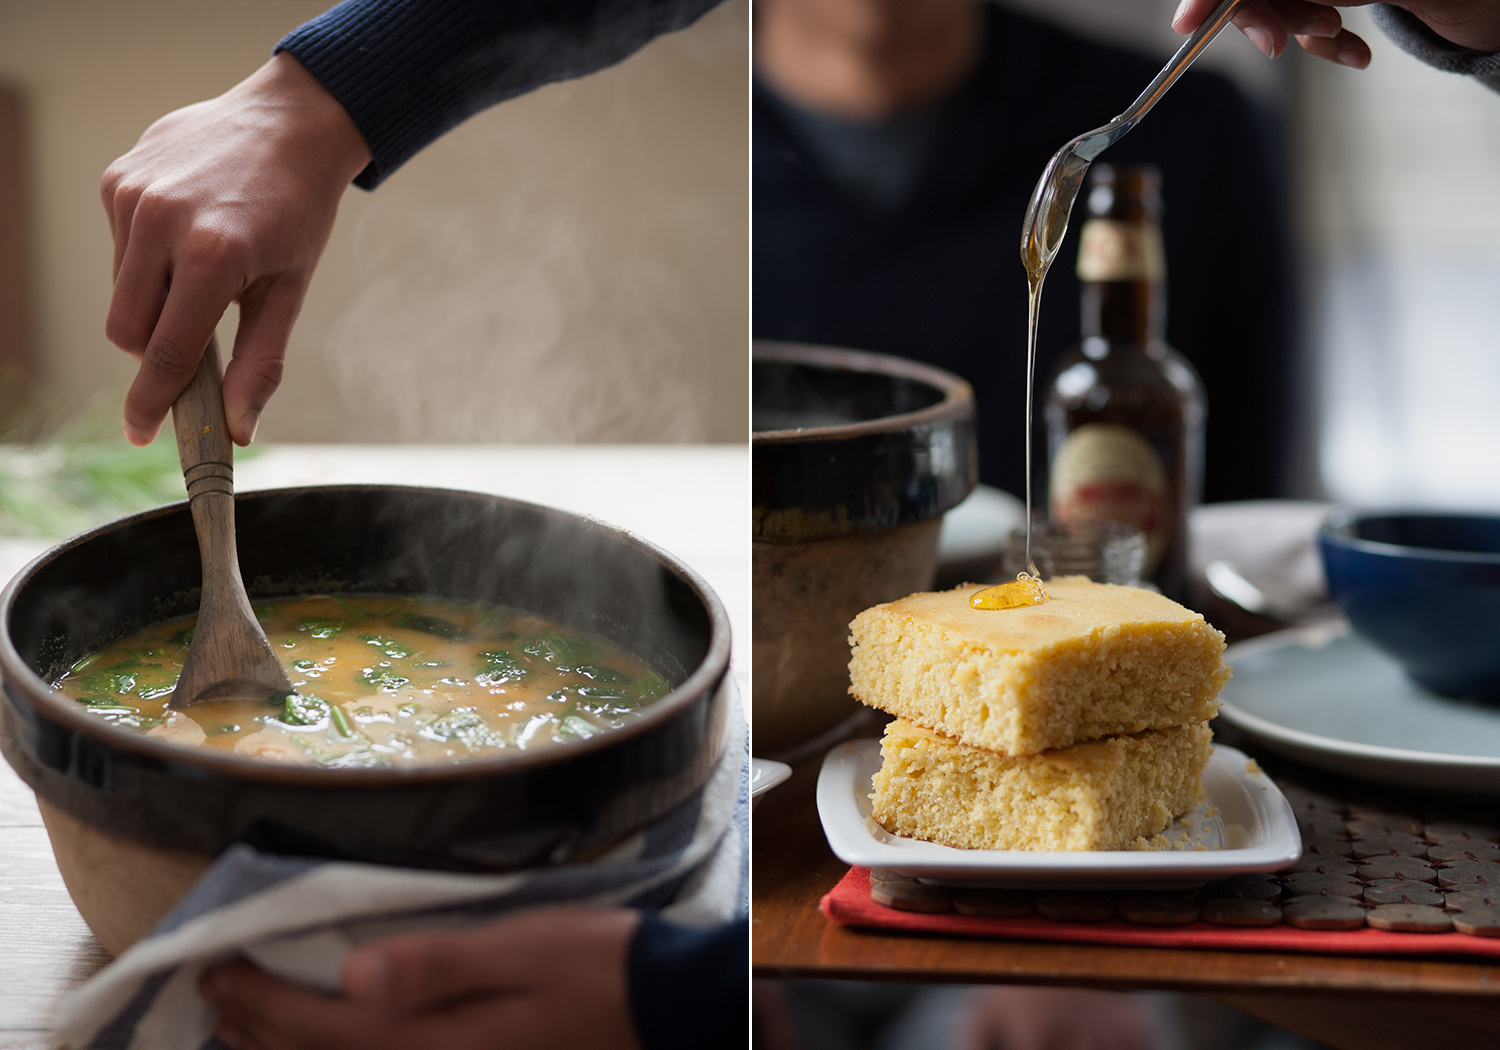 Beautiful action and movement shots in food photography